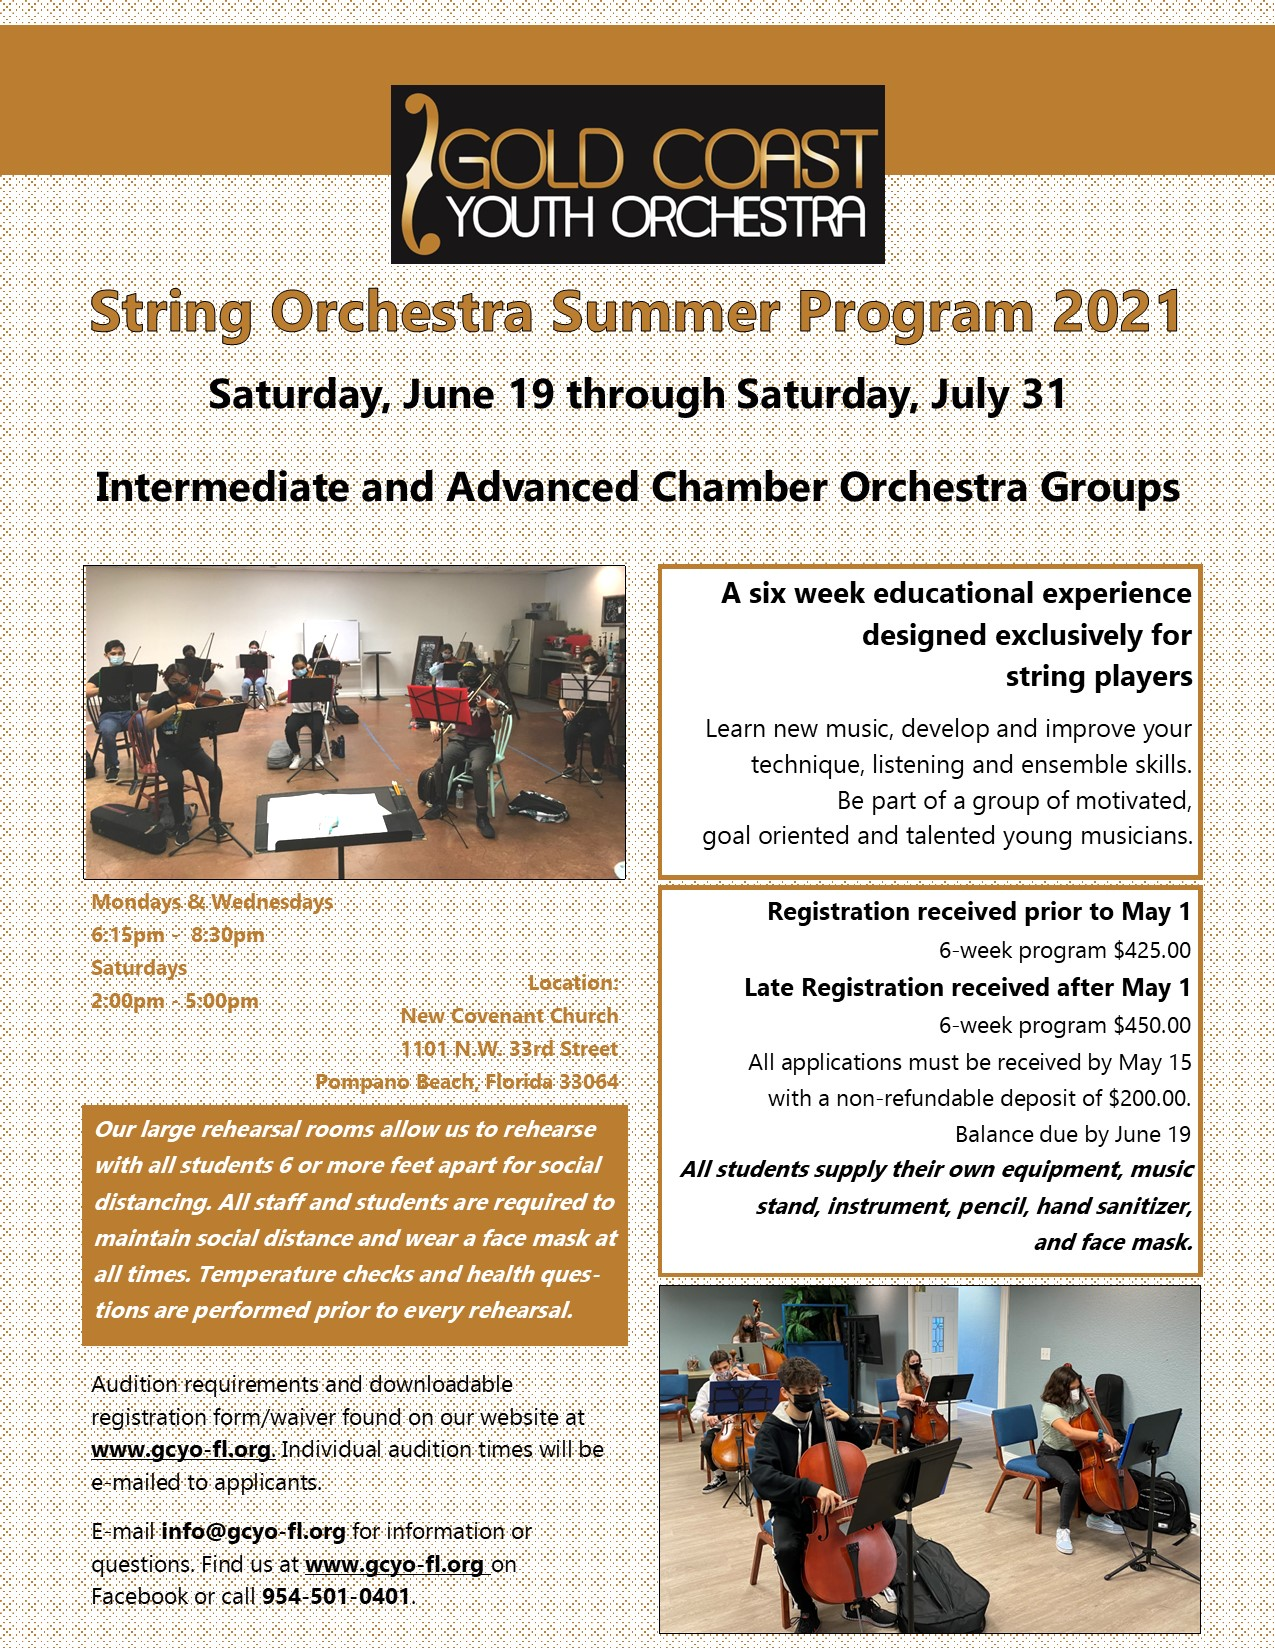 Gold Coast Youth Orchestra